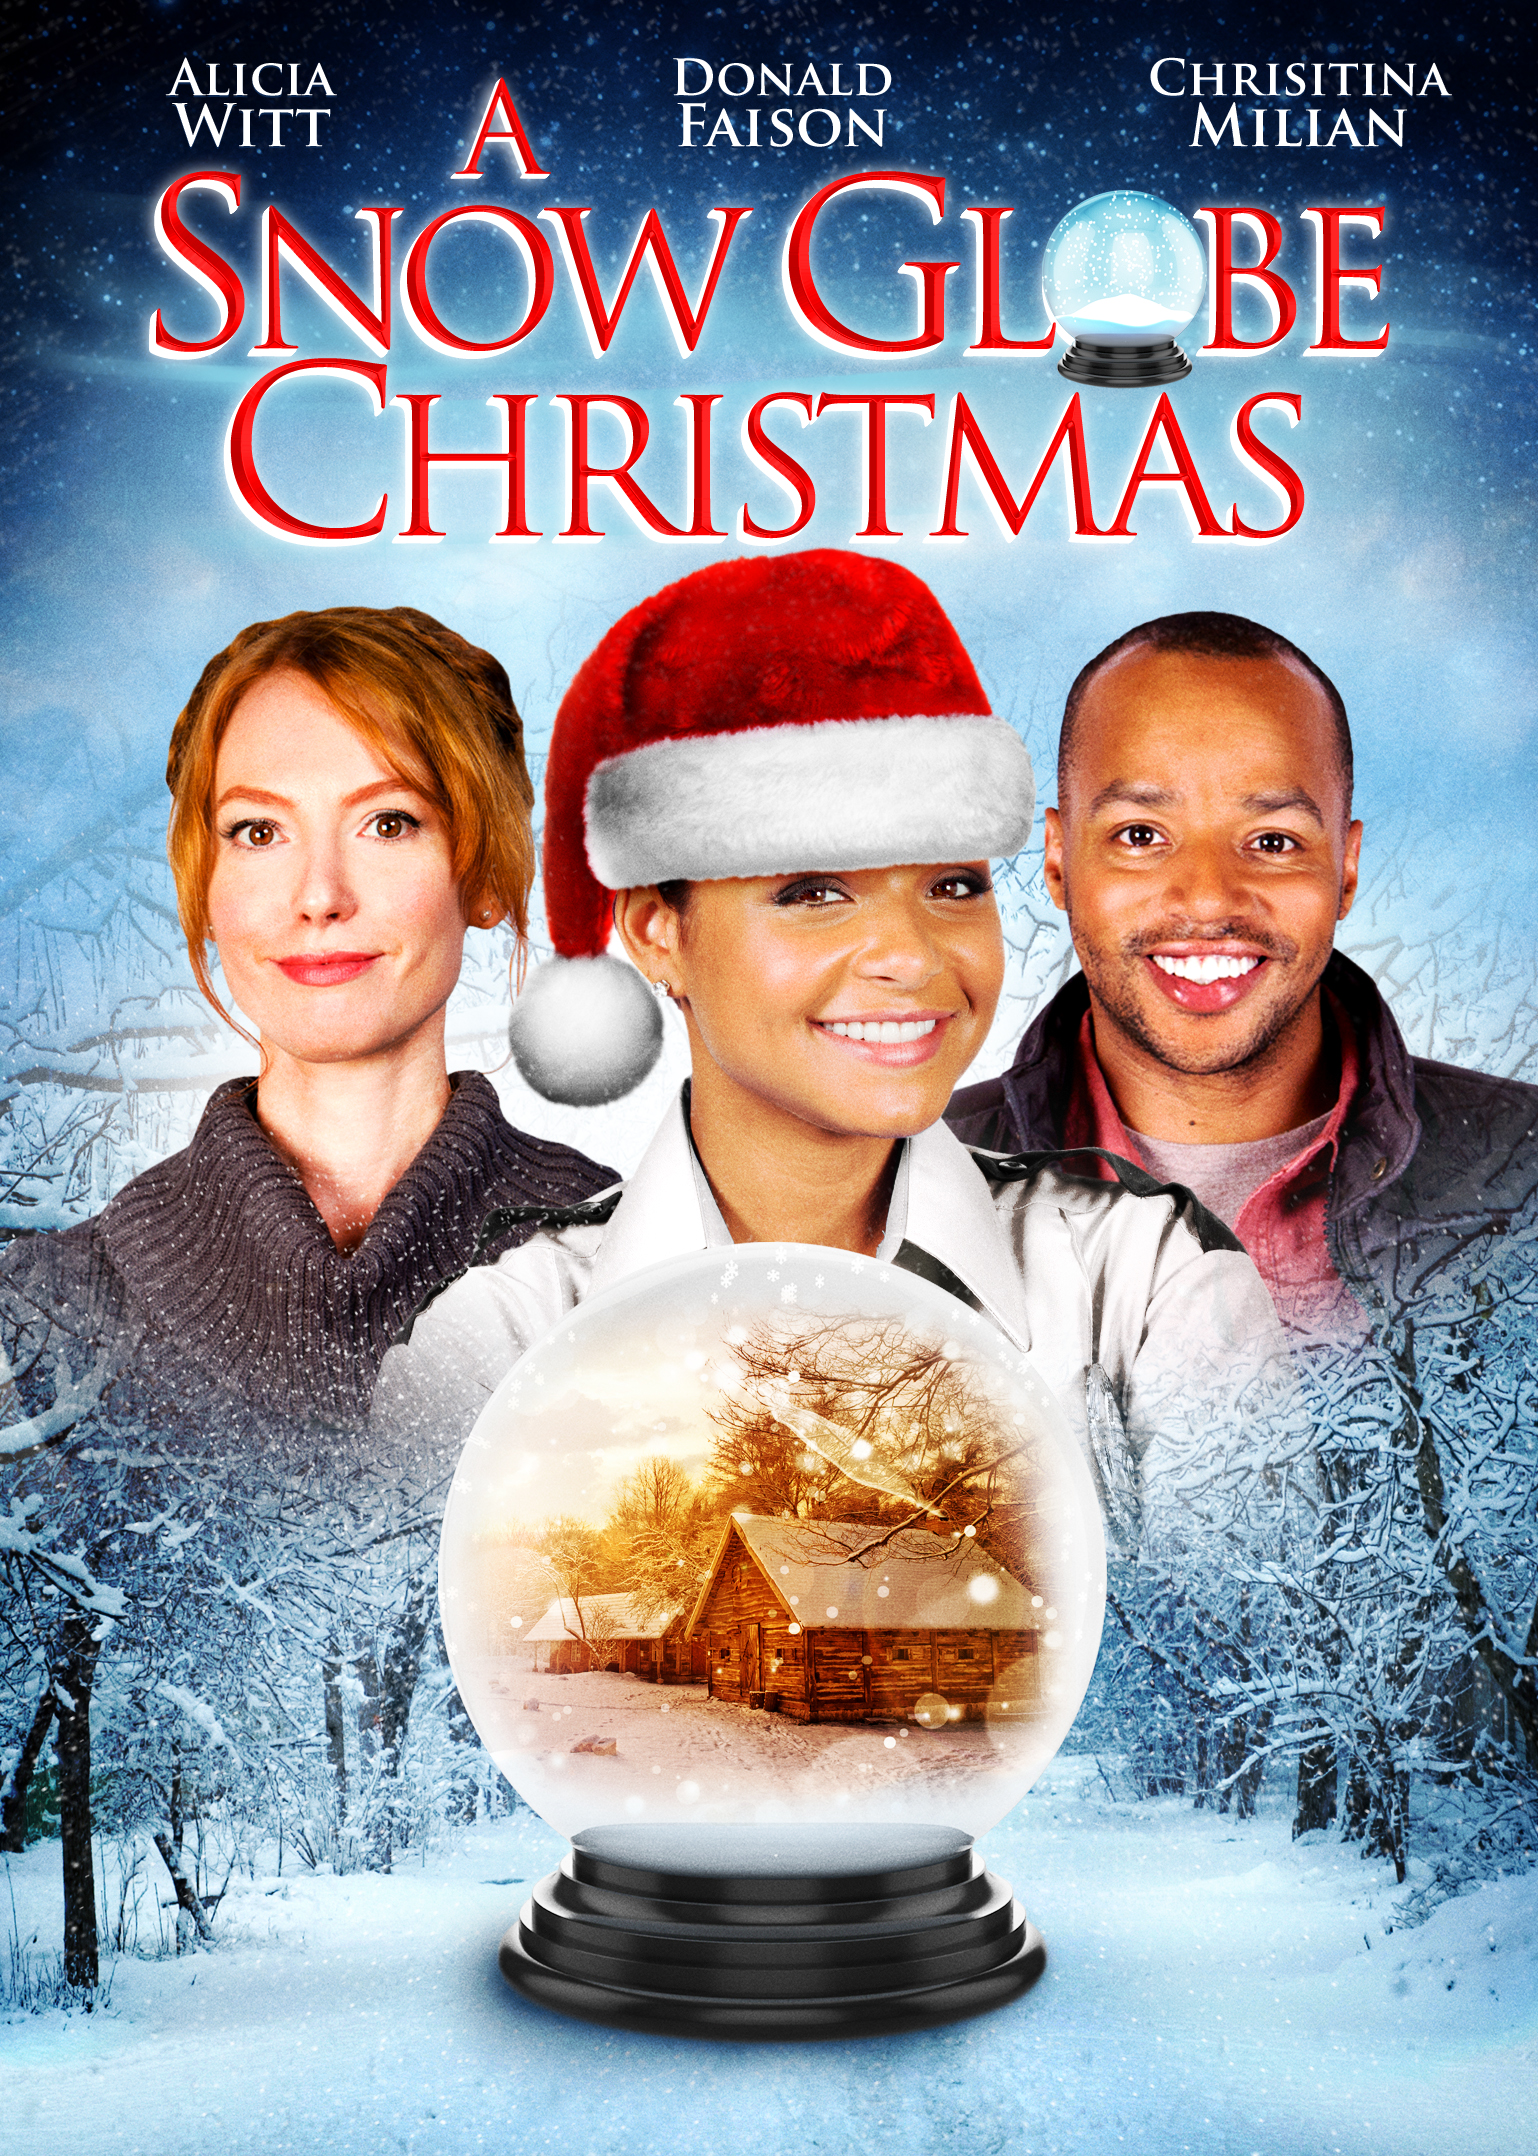 A Christmas Snow.A Snow Globe Christmas Tv Movie 2013 Imdb